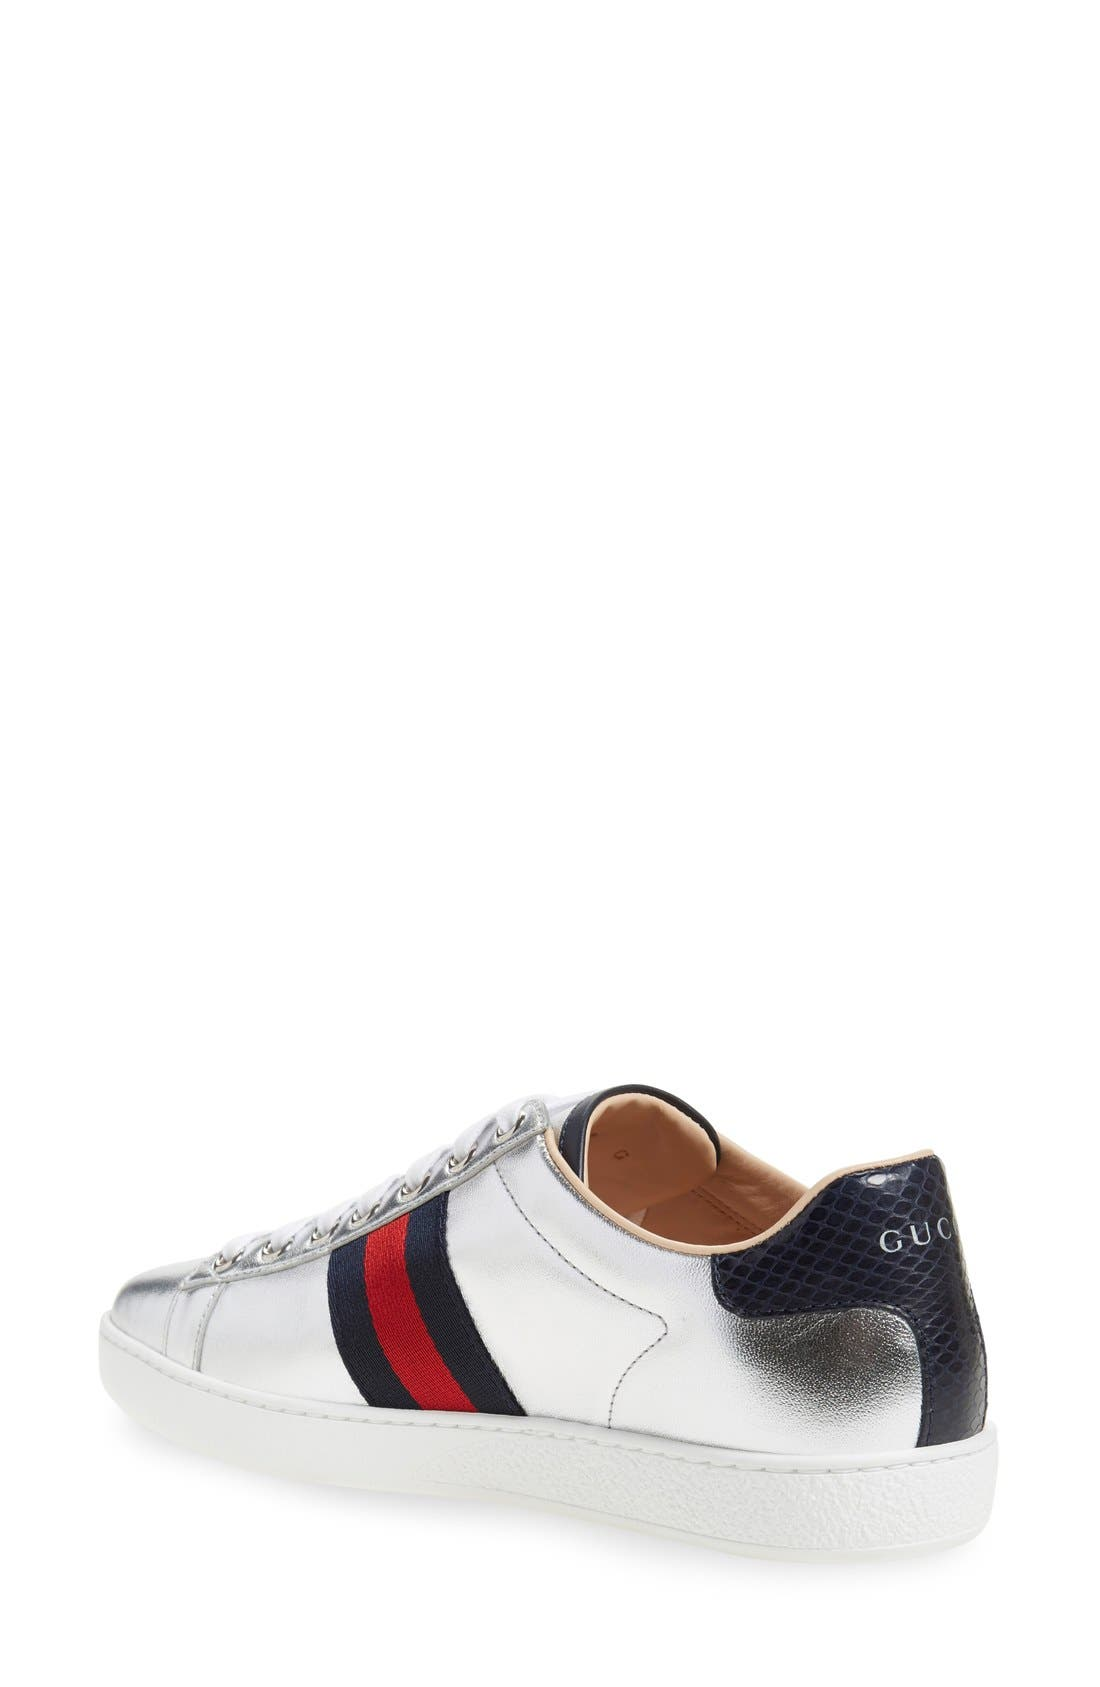 GUCCI,                             'New Ace' Metallic Low Top Sneaker,                             Alternate thumbnail 4, color,                             040